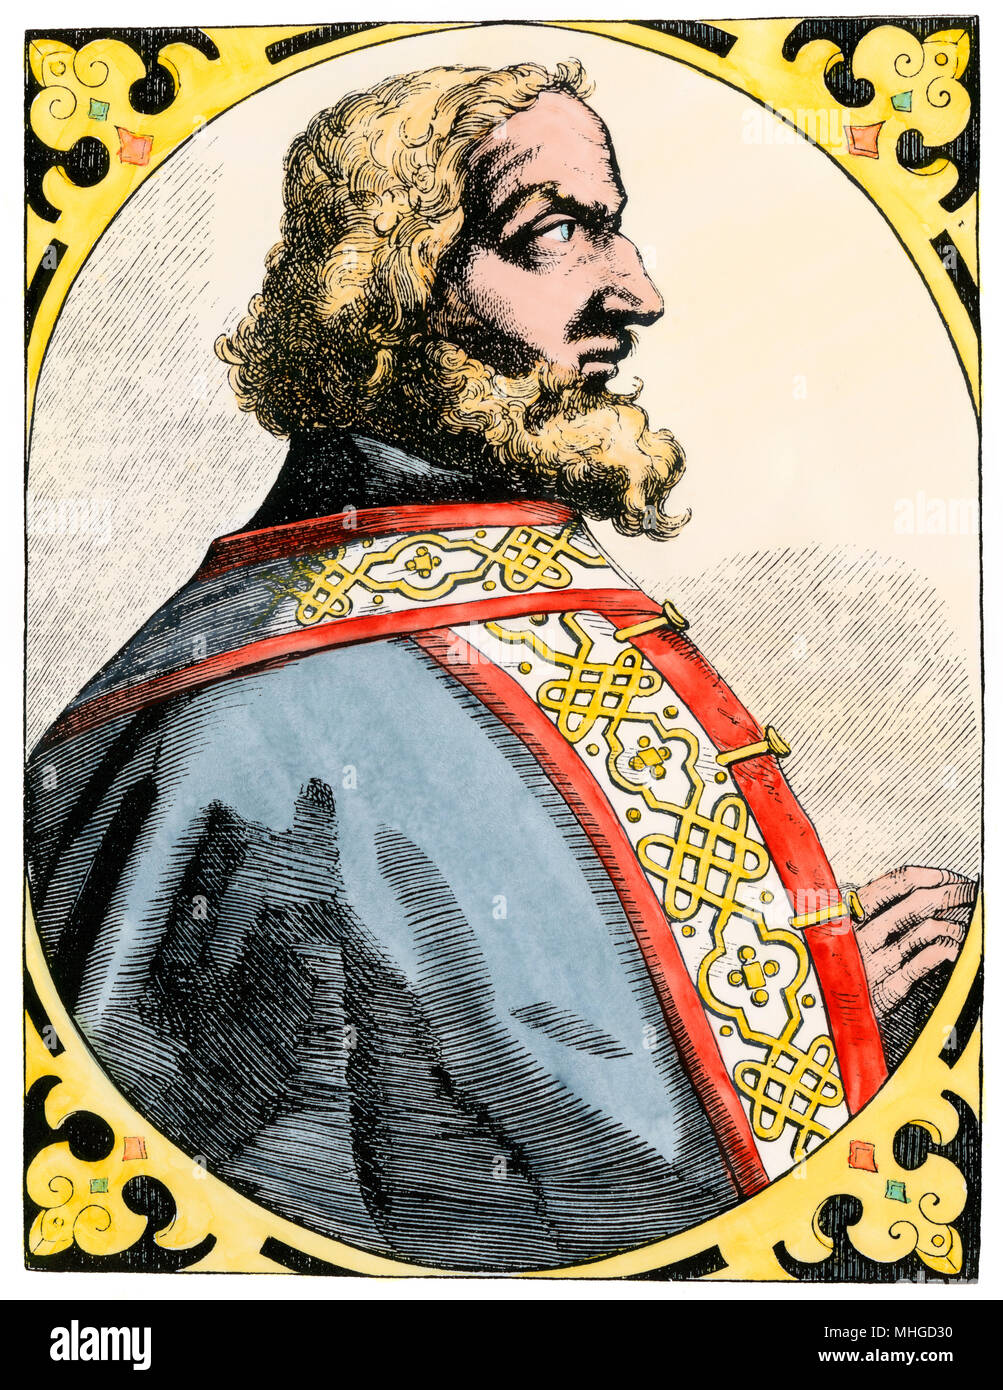 Charlemagne, called the King with the Grizzly Beard in the Song of Roland. Hand-colored woodcut - Stock Image